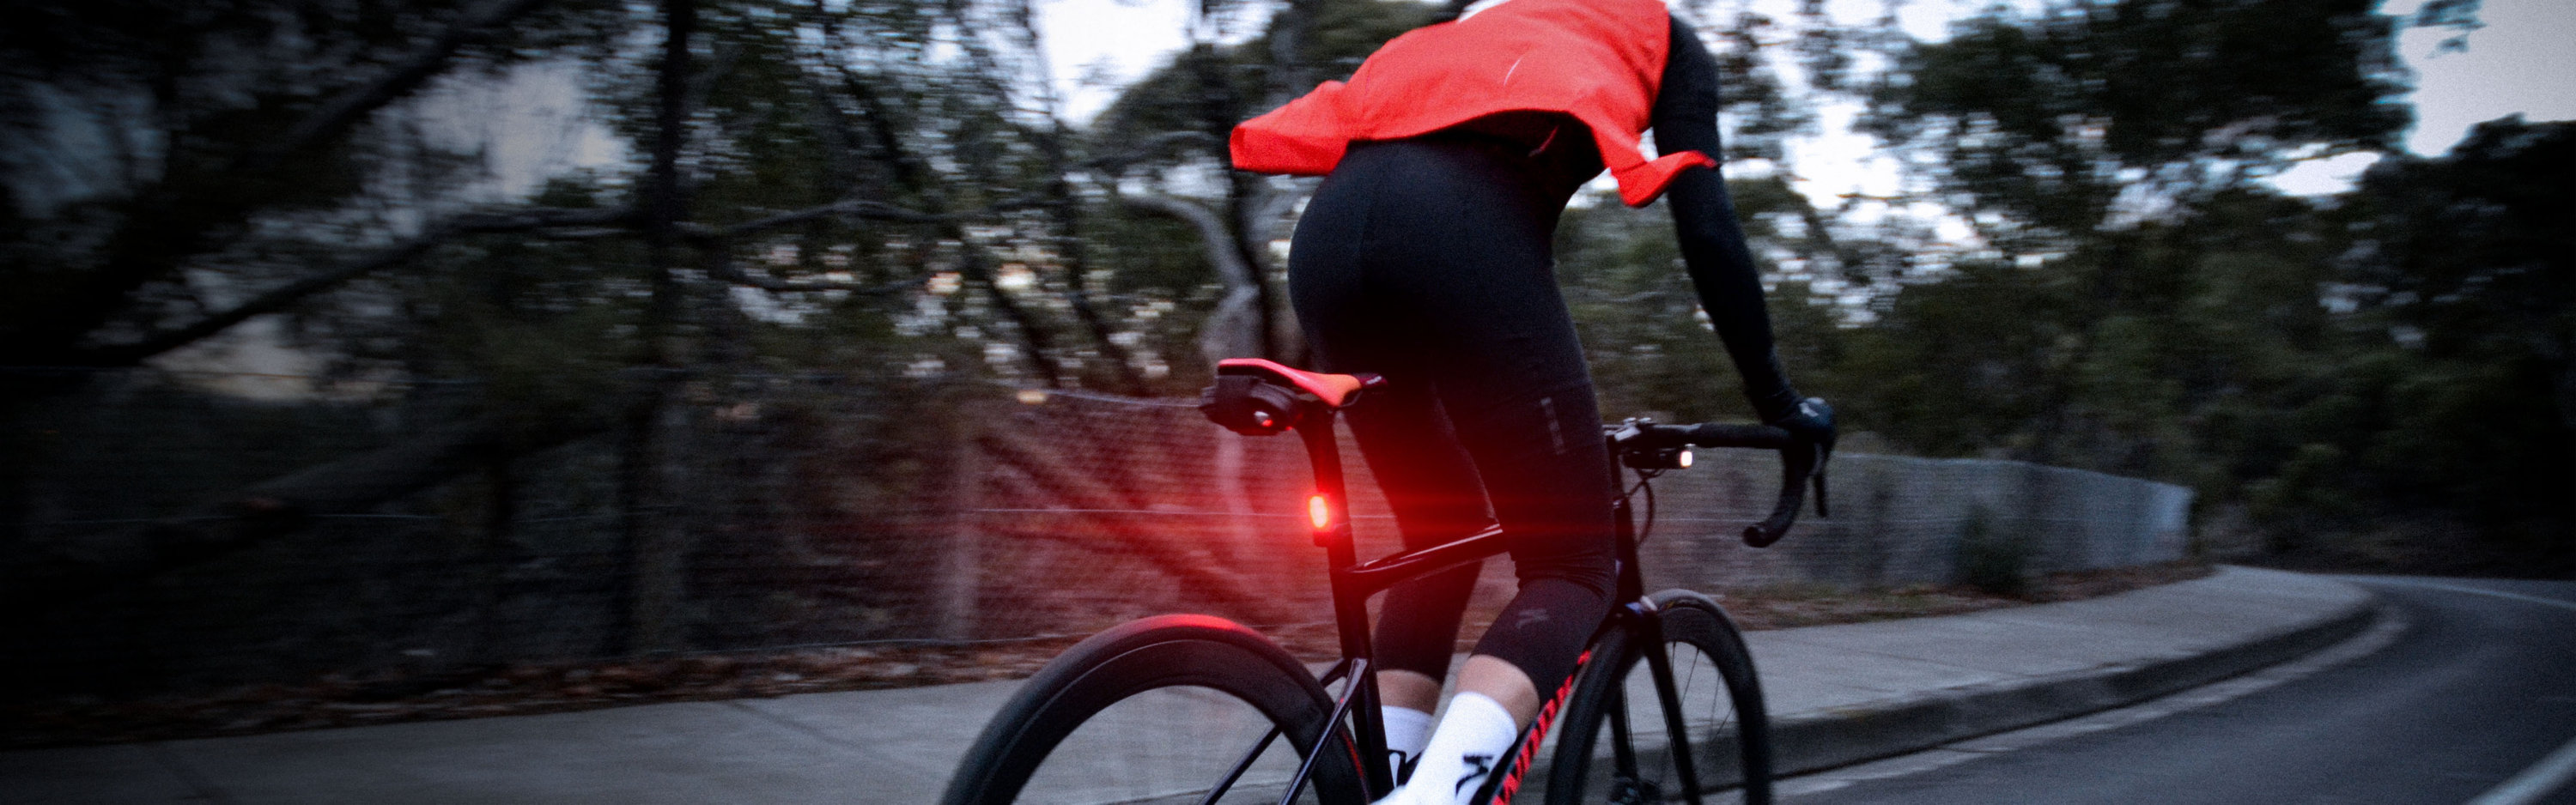 new product 19b92 9fc40 Lights | Specialized.com